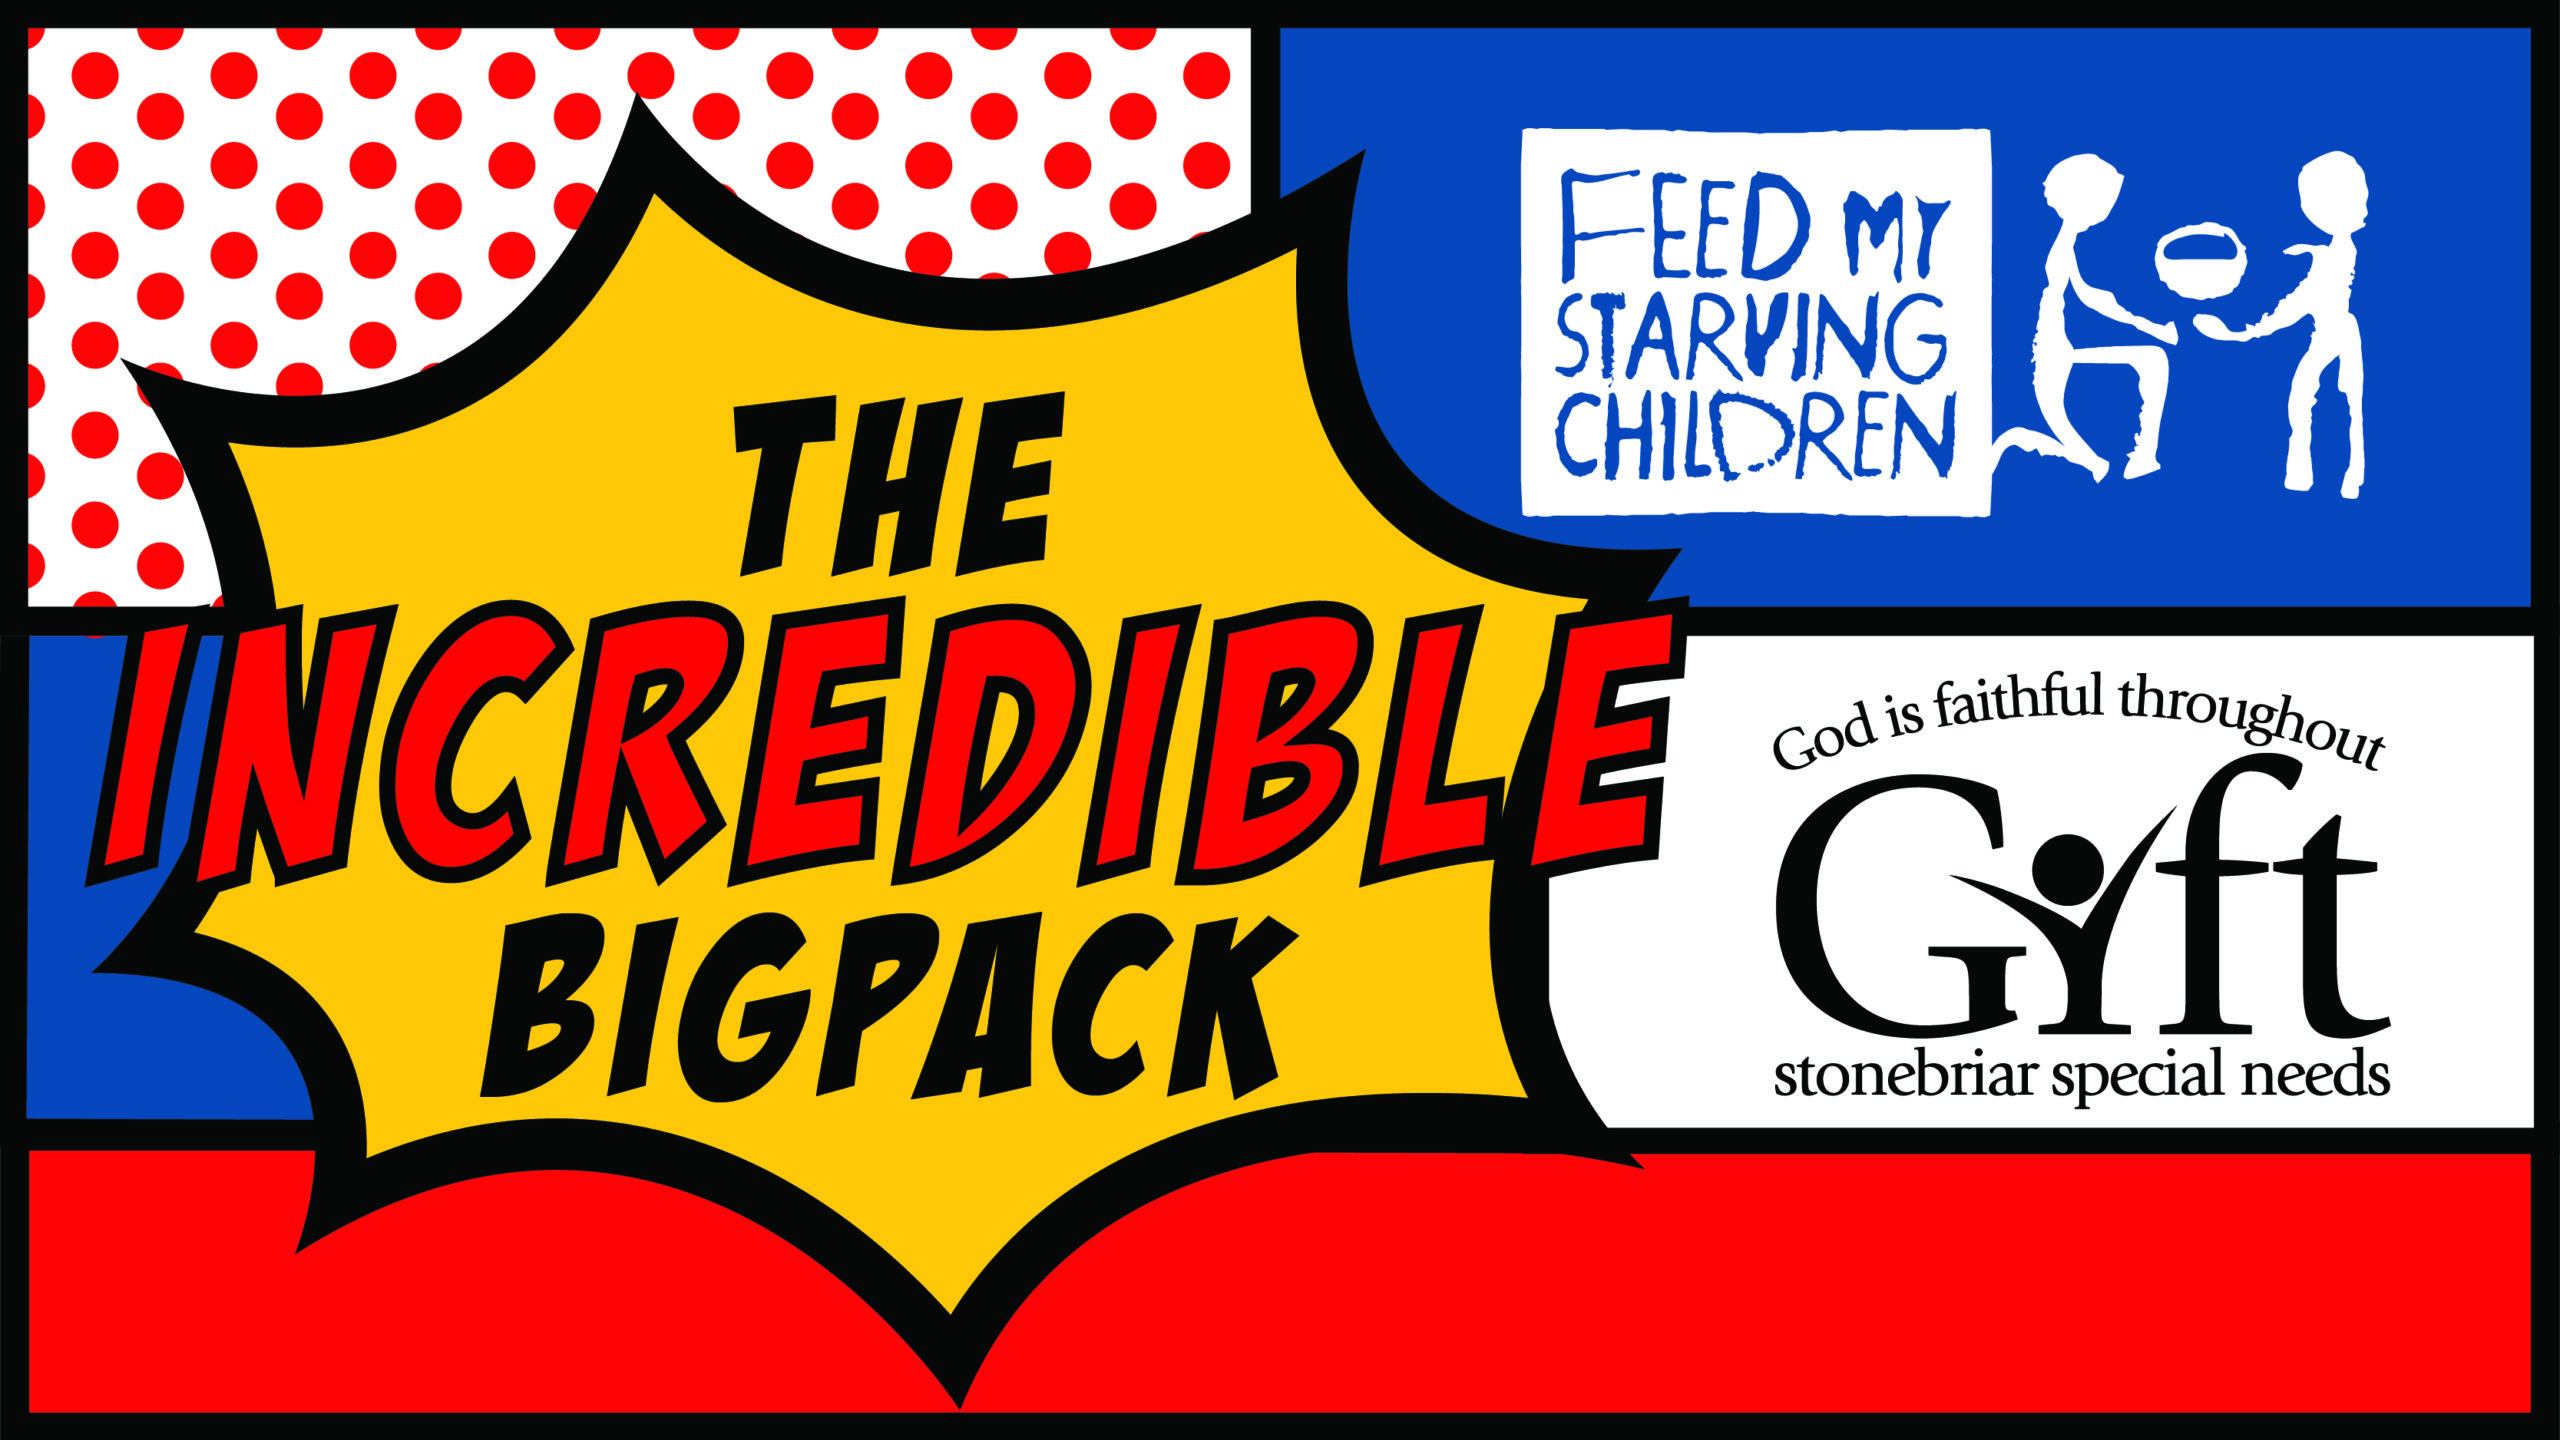 The Incredible Bigpack